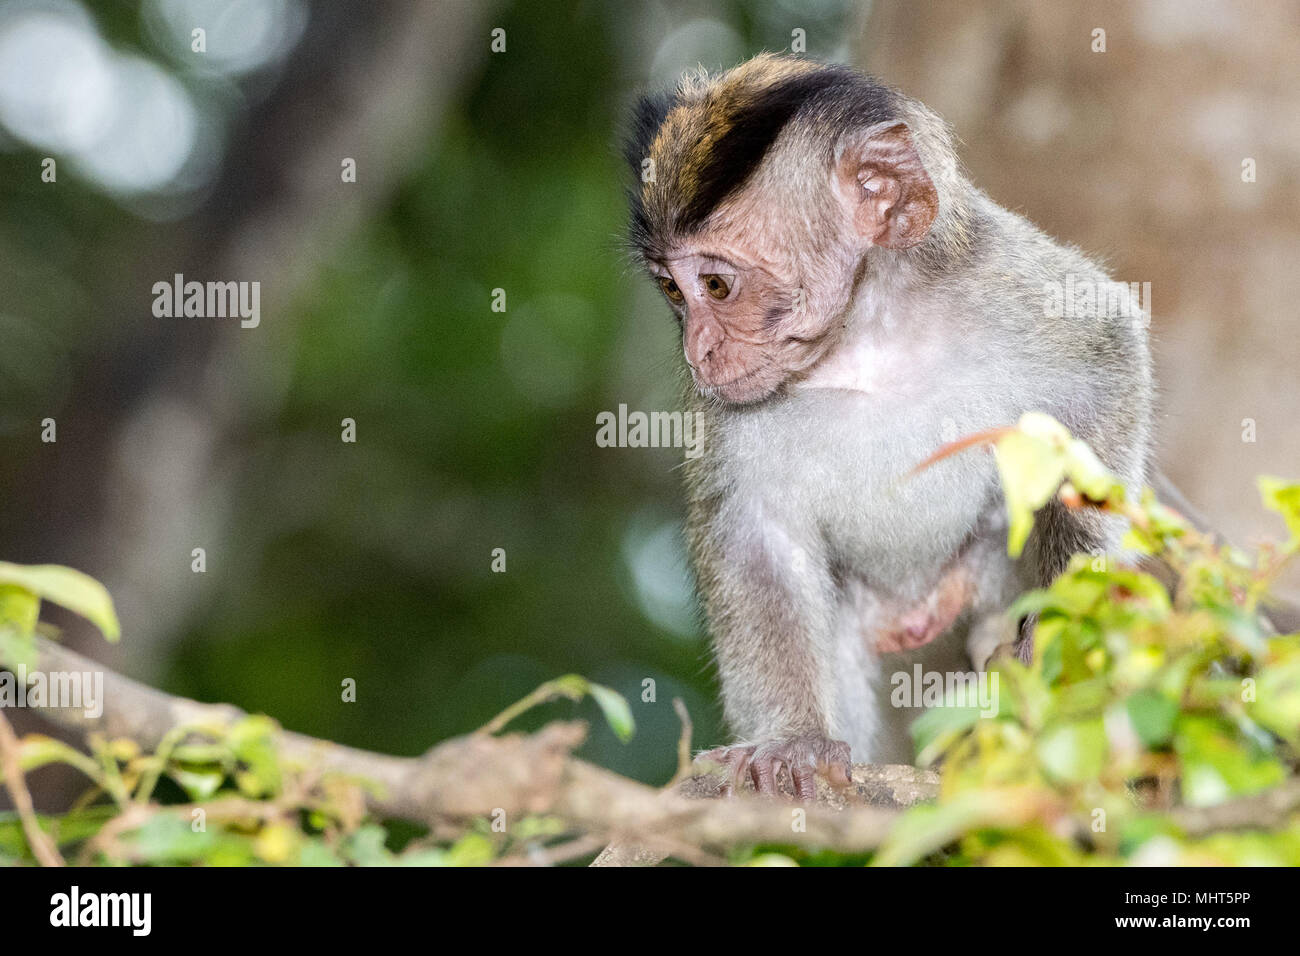 Baby Puppy Indonesia Macaque Monkey Ape Close Up Portrait Looking At